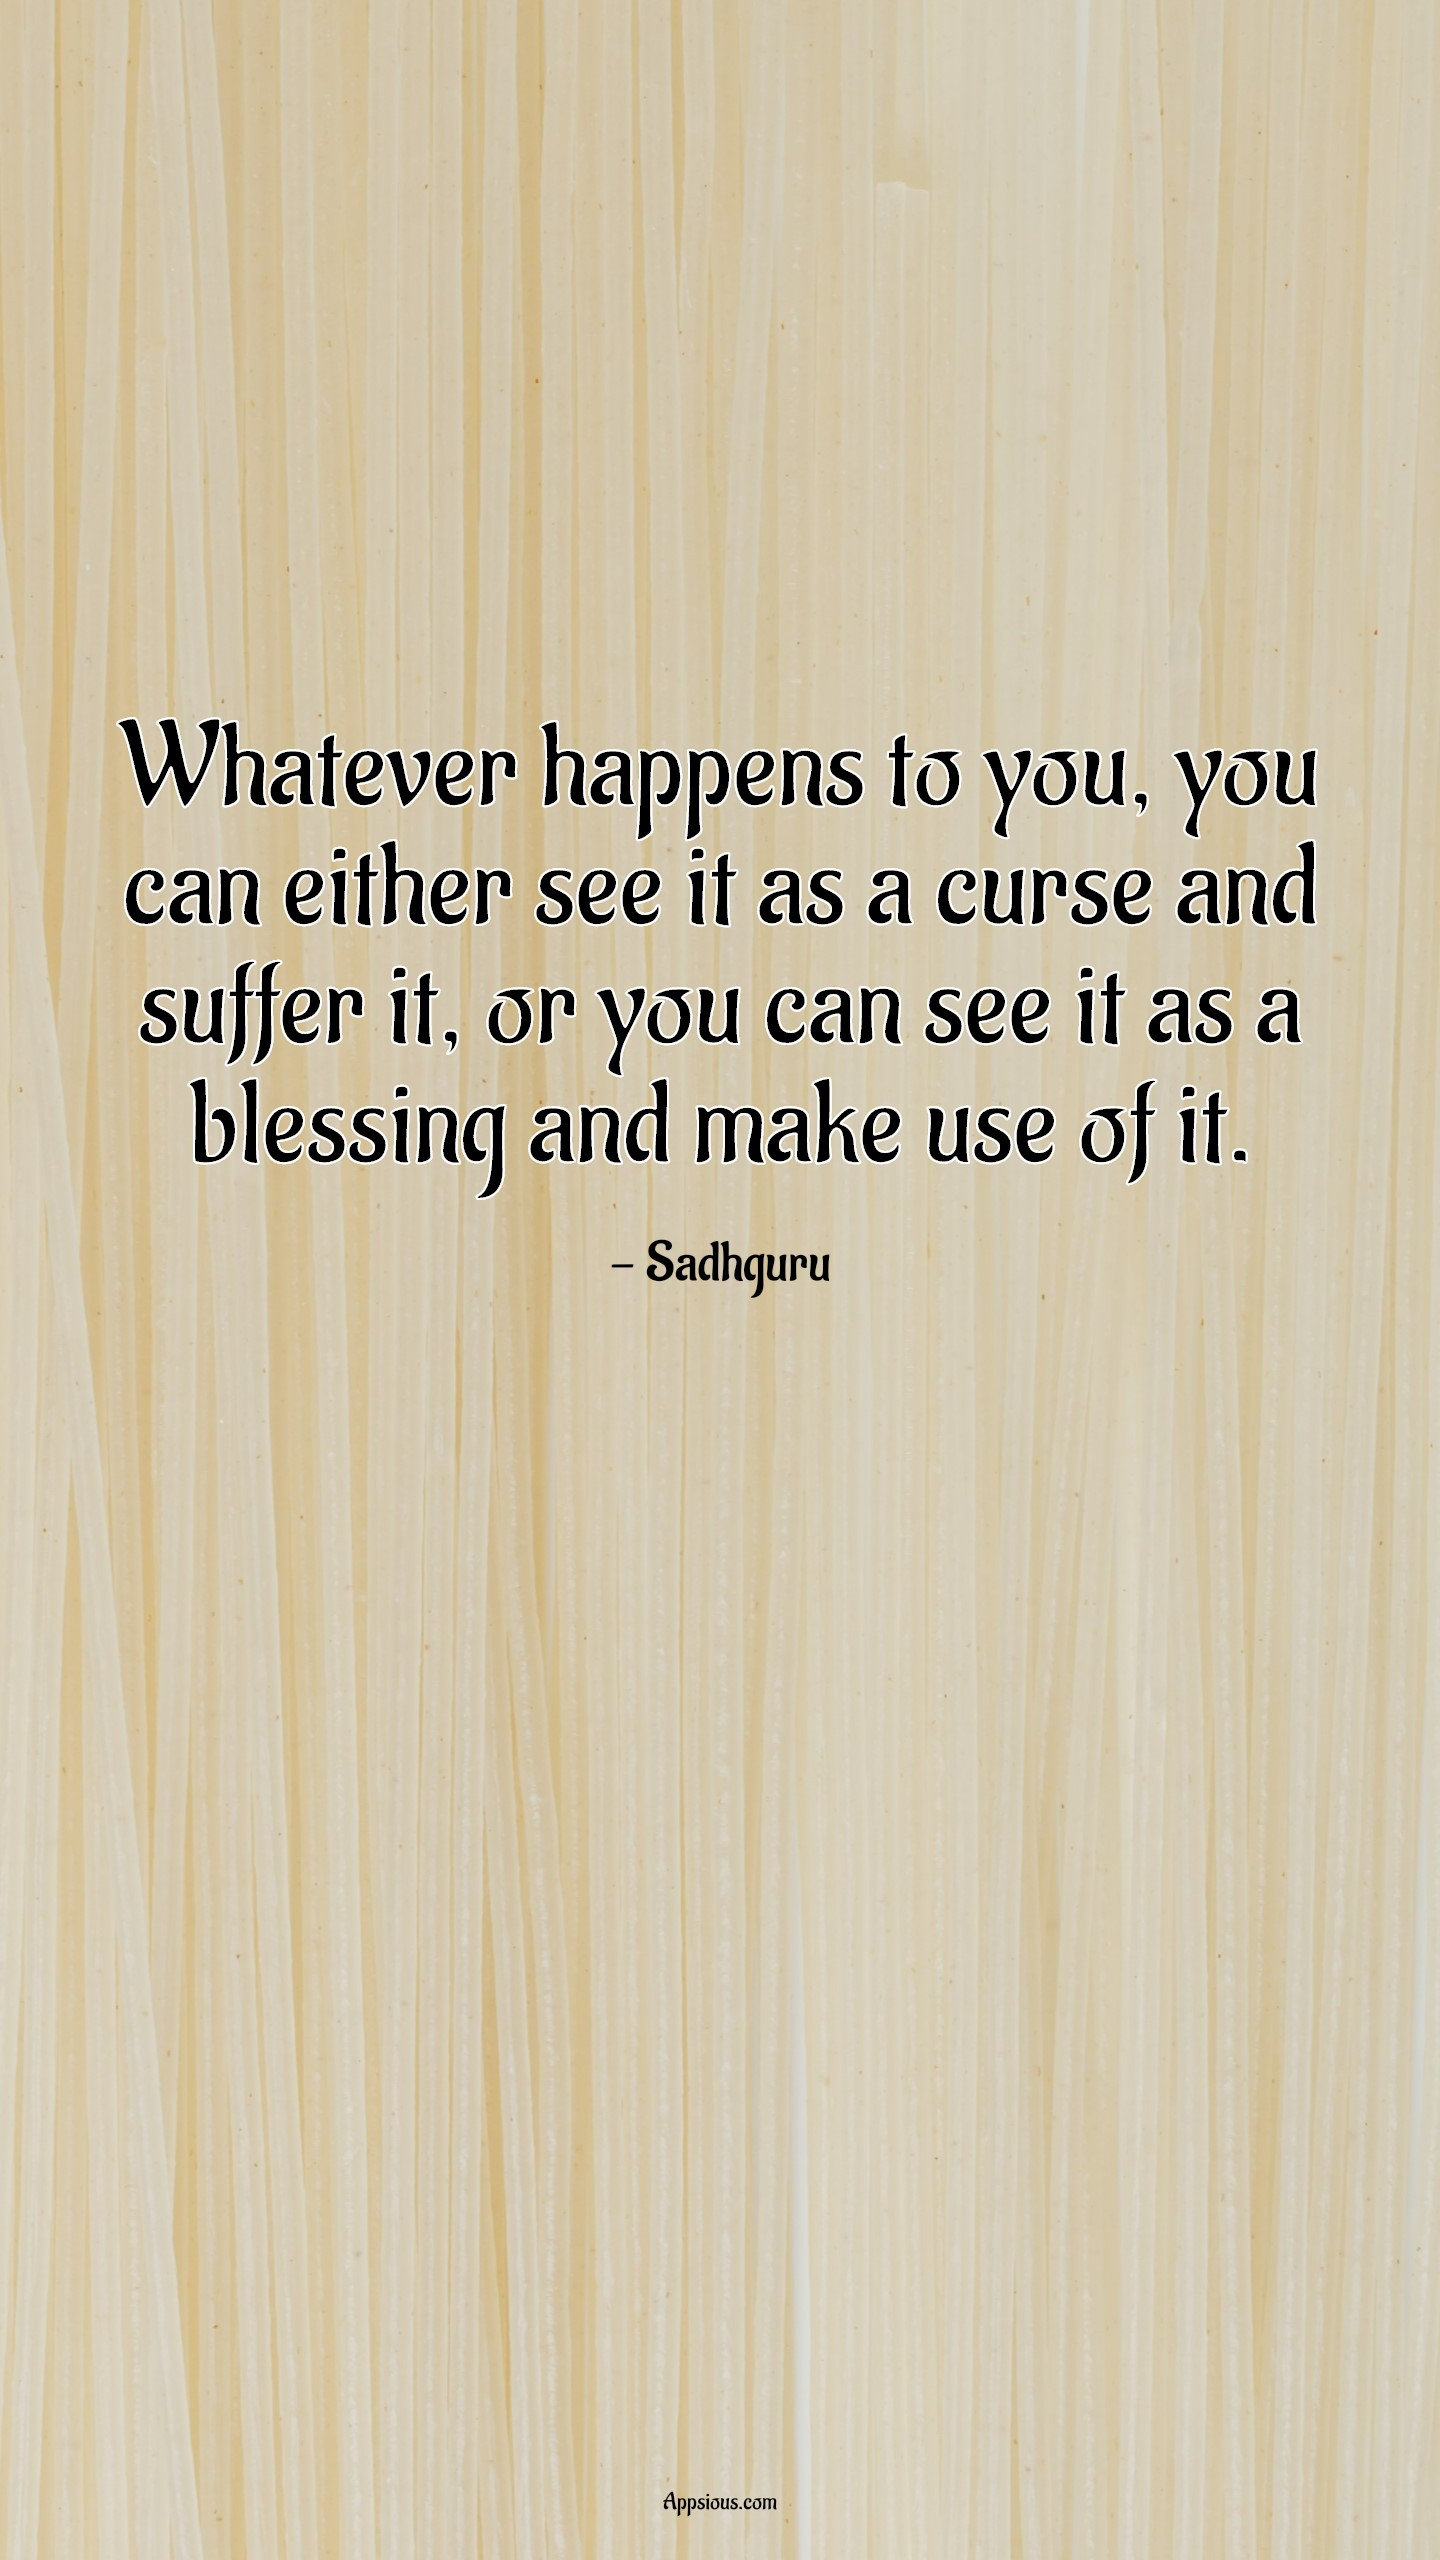 Whatever happens to you, you can either see it as a curse and suffer it, or you can see it as a blessing and make use of it.